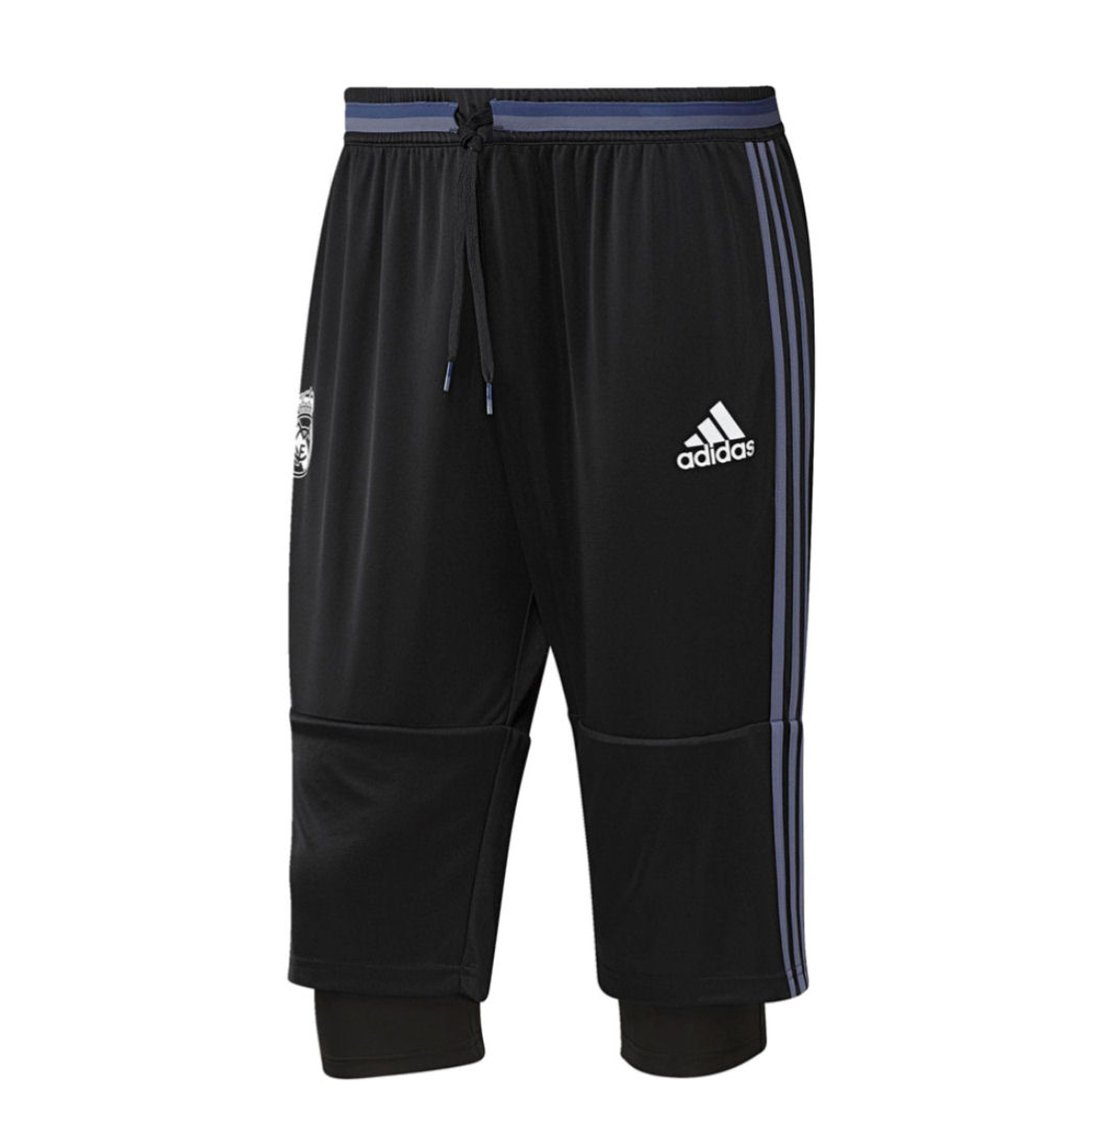 2016-2017 Real Madrid YOUTH three quarter pants (Medium)